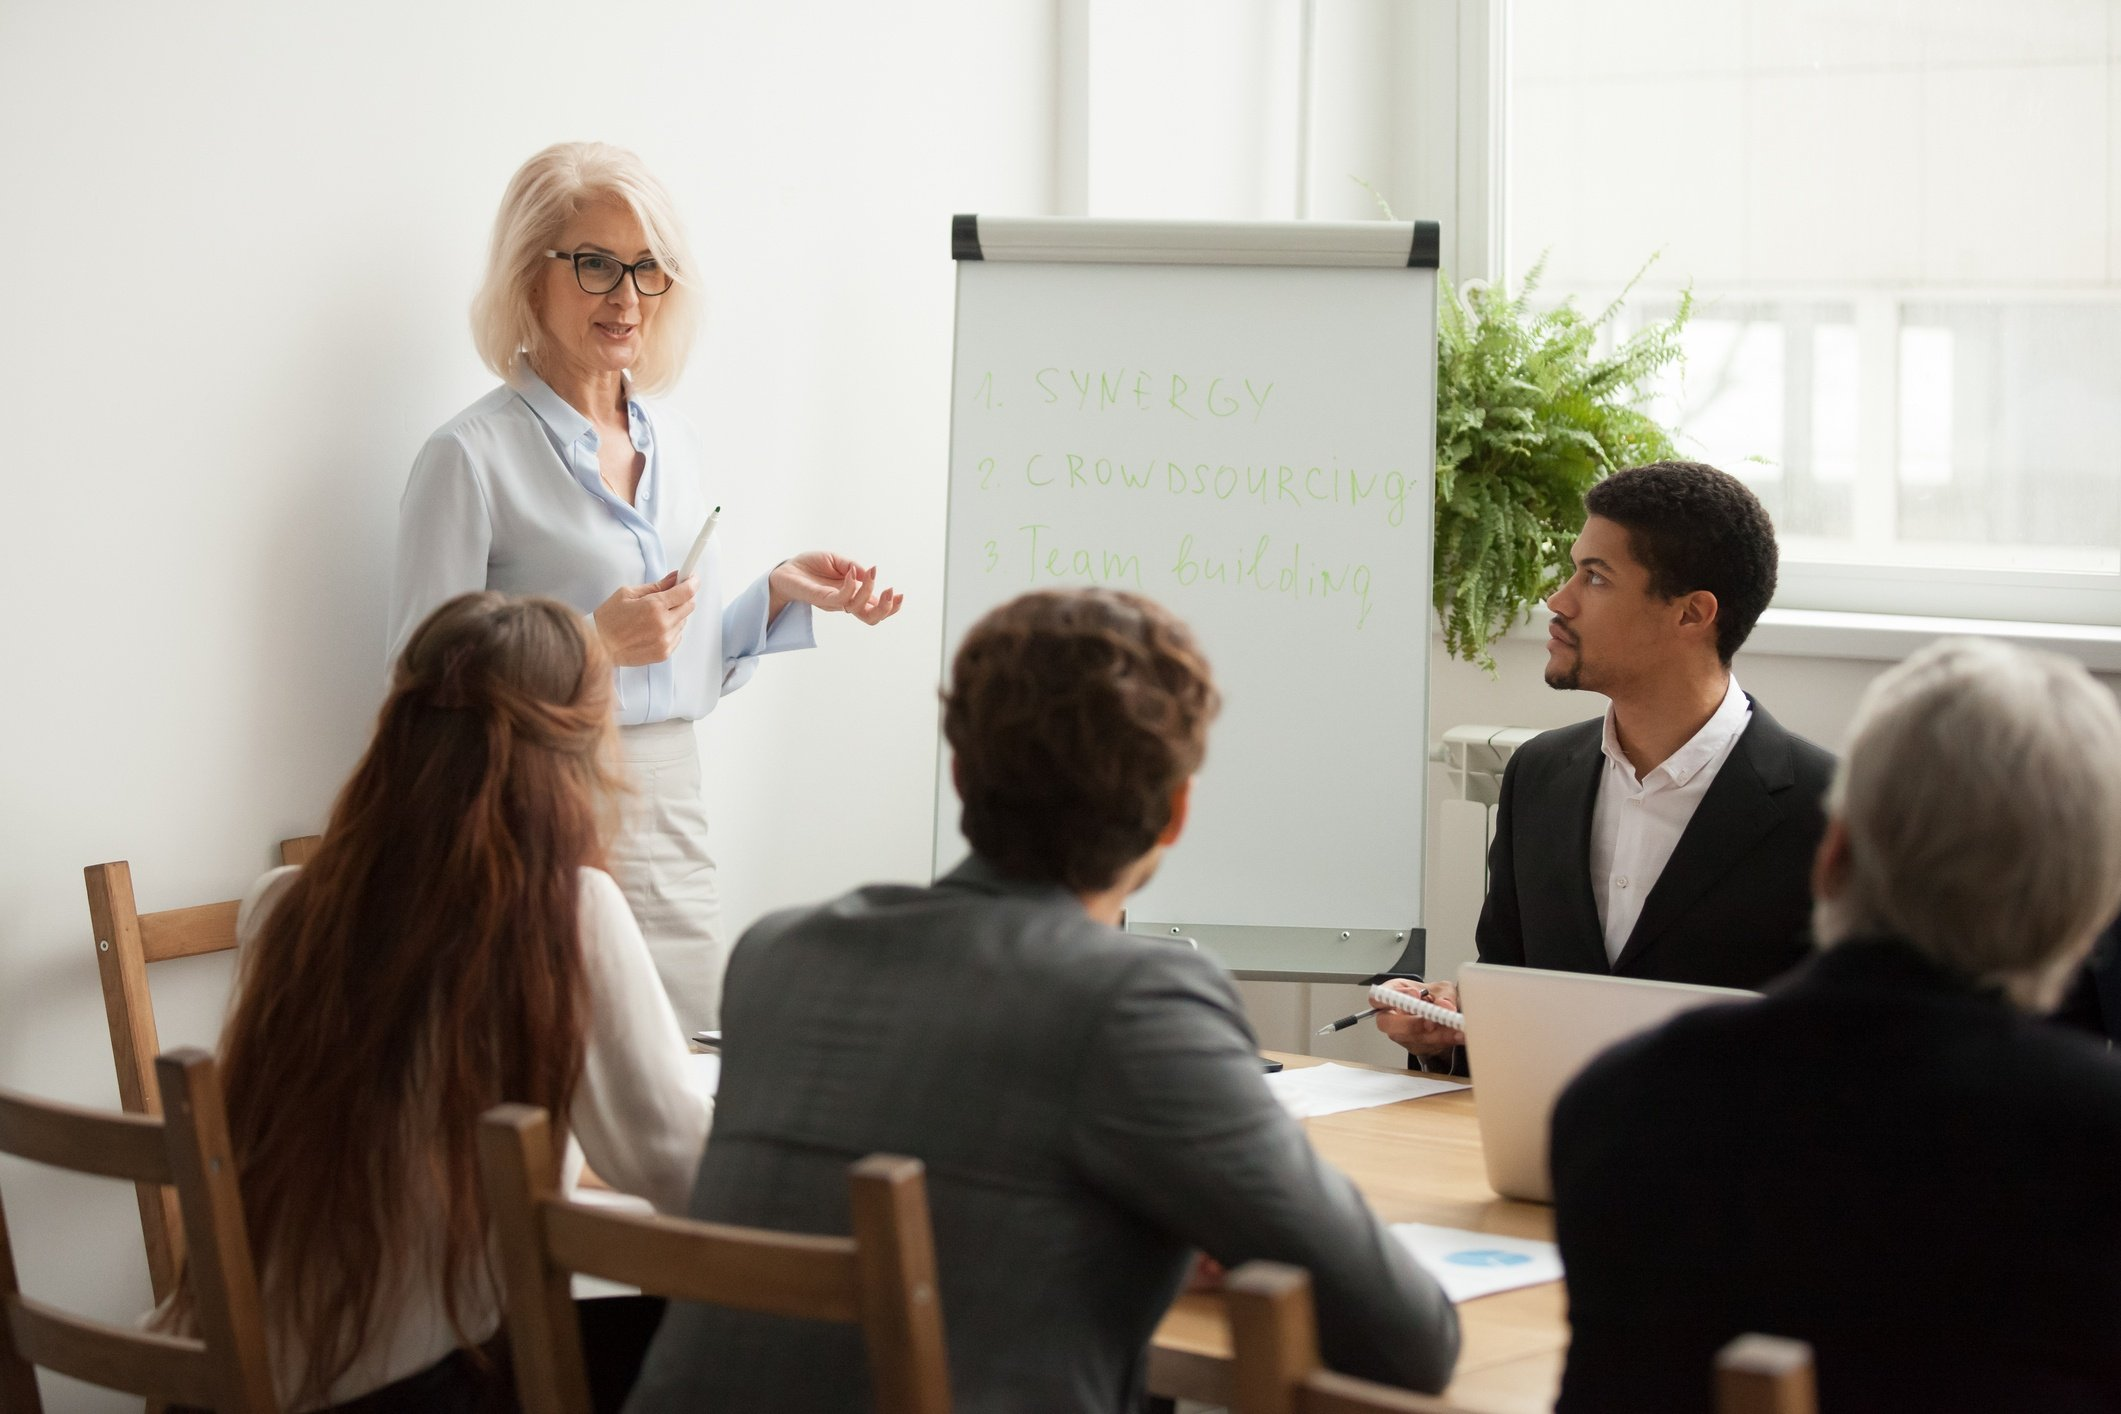 Management vs. Leadership: Why Ethical Business Leadership Skills Are So Important